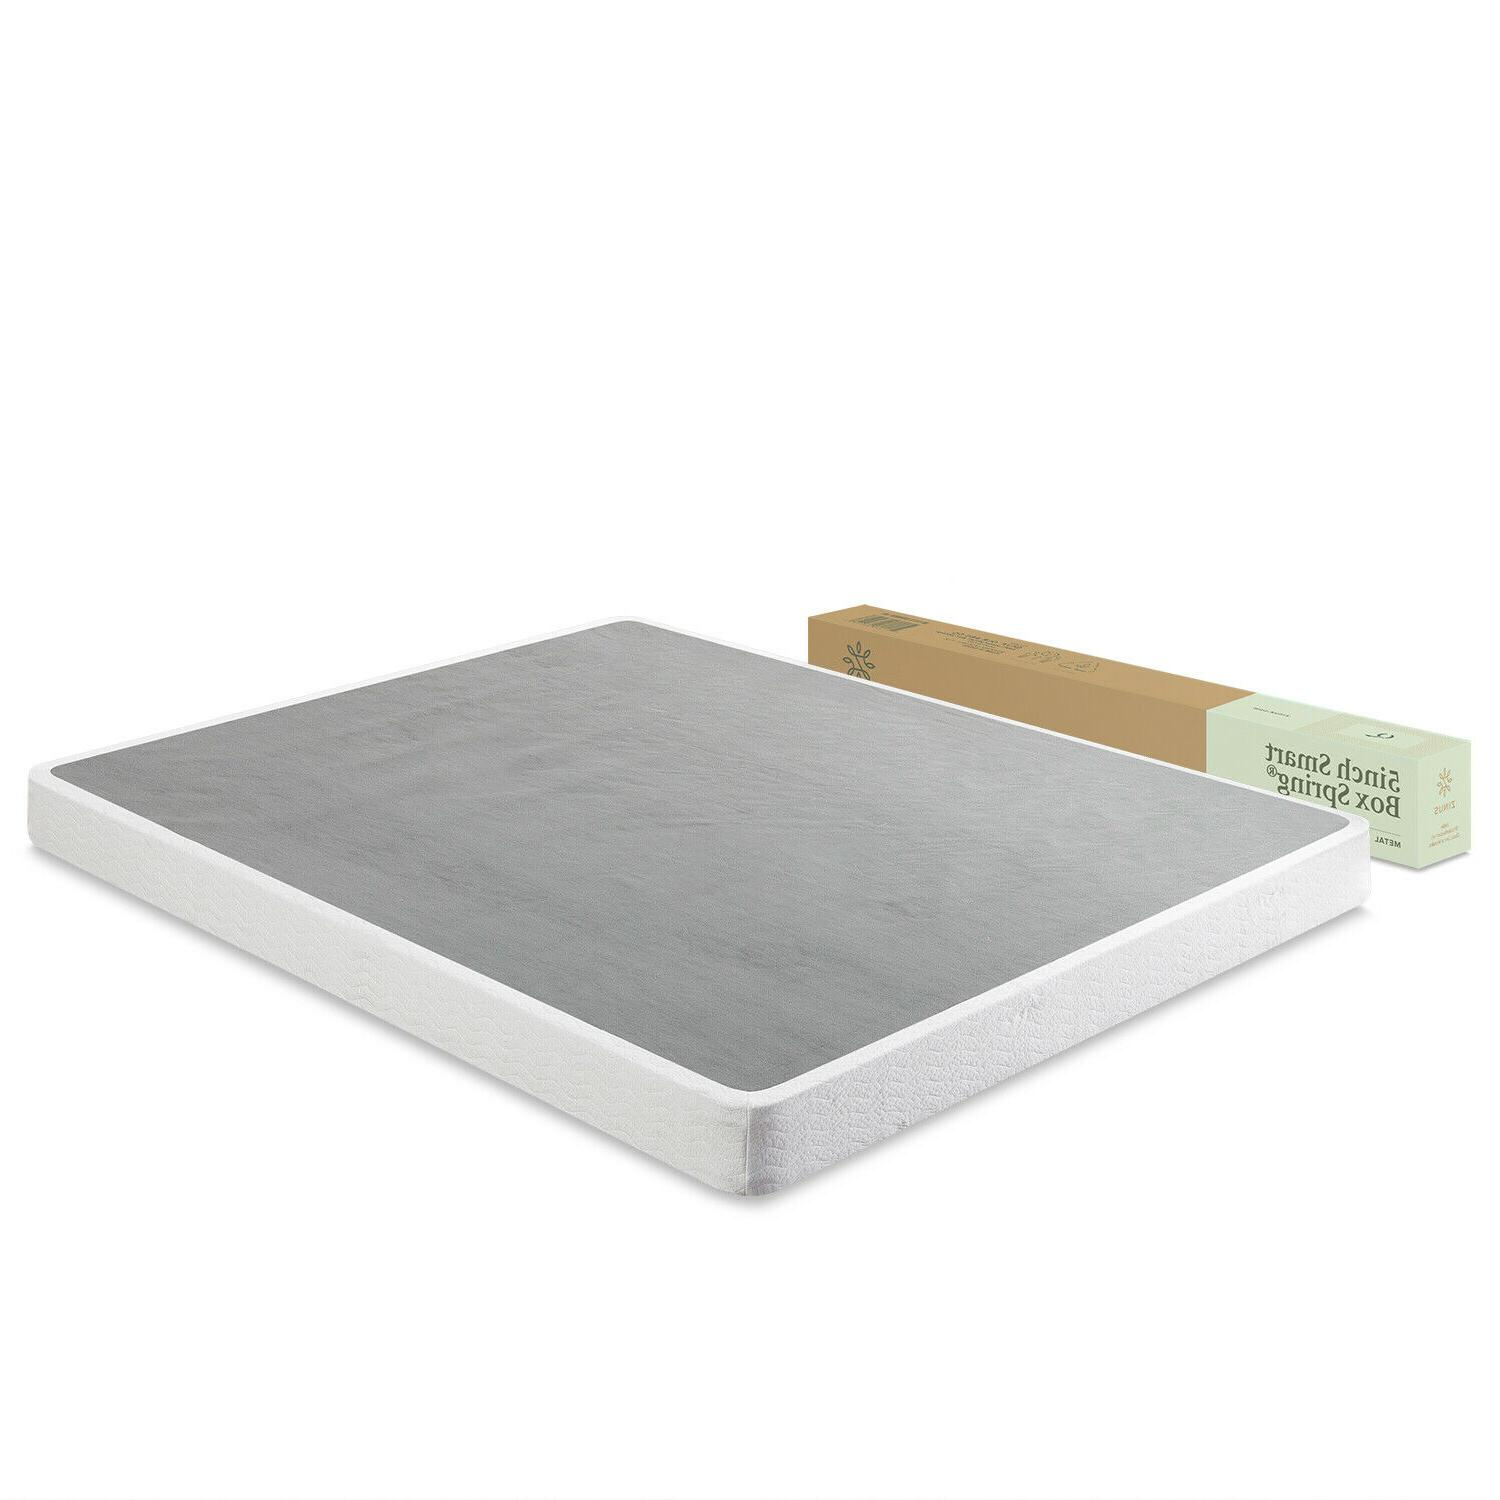 "Box Spring 5"" Low Profile Boxspring For Memory Foam or Mattr"